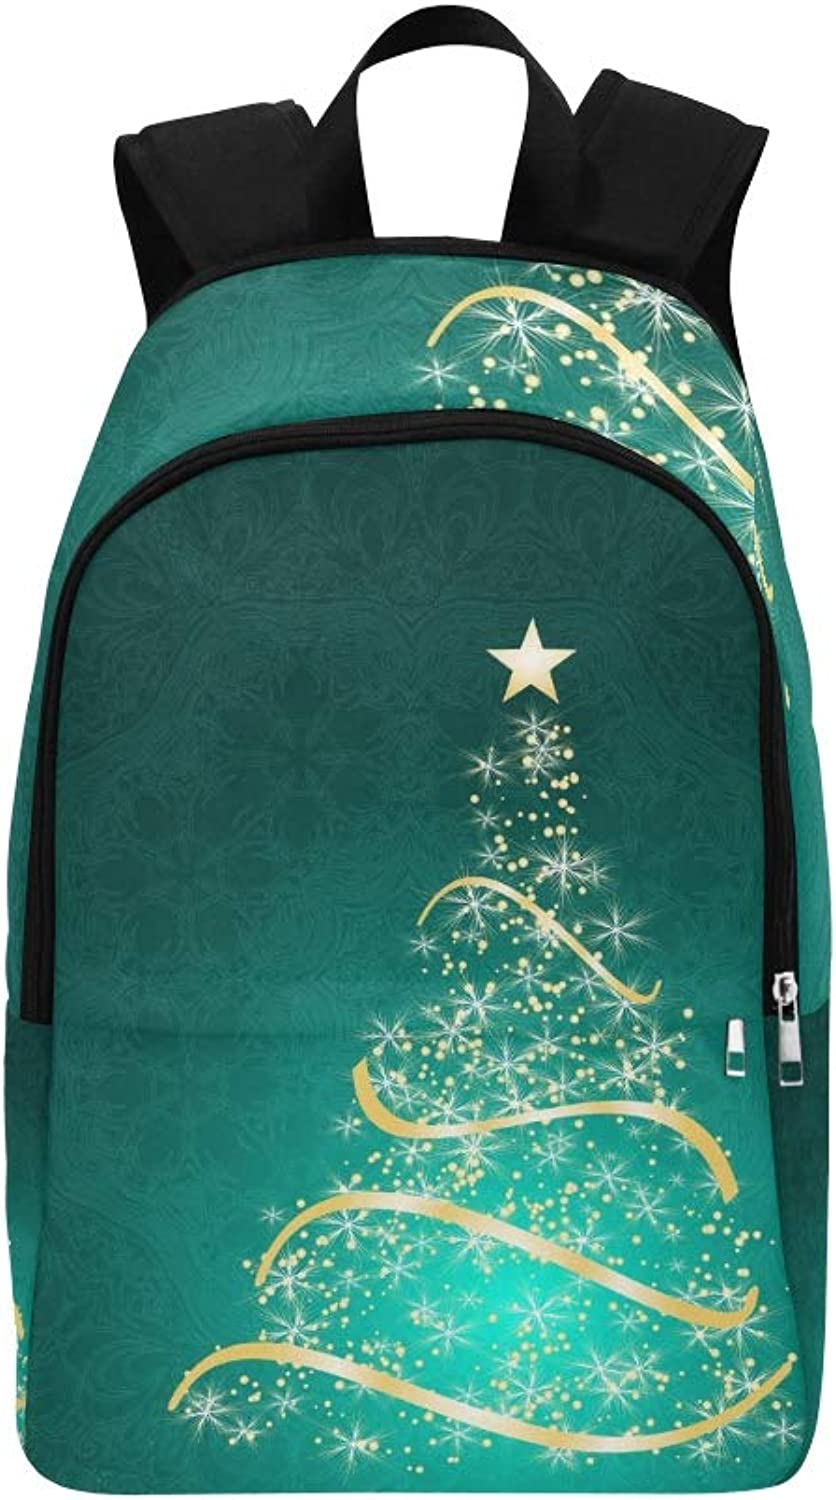 Stylized Christmas Tree On Decorative Casual Daypack Travel Bag College School Backpack for Mens and Women